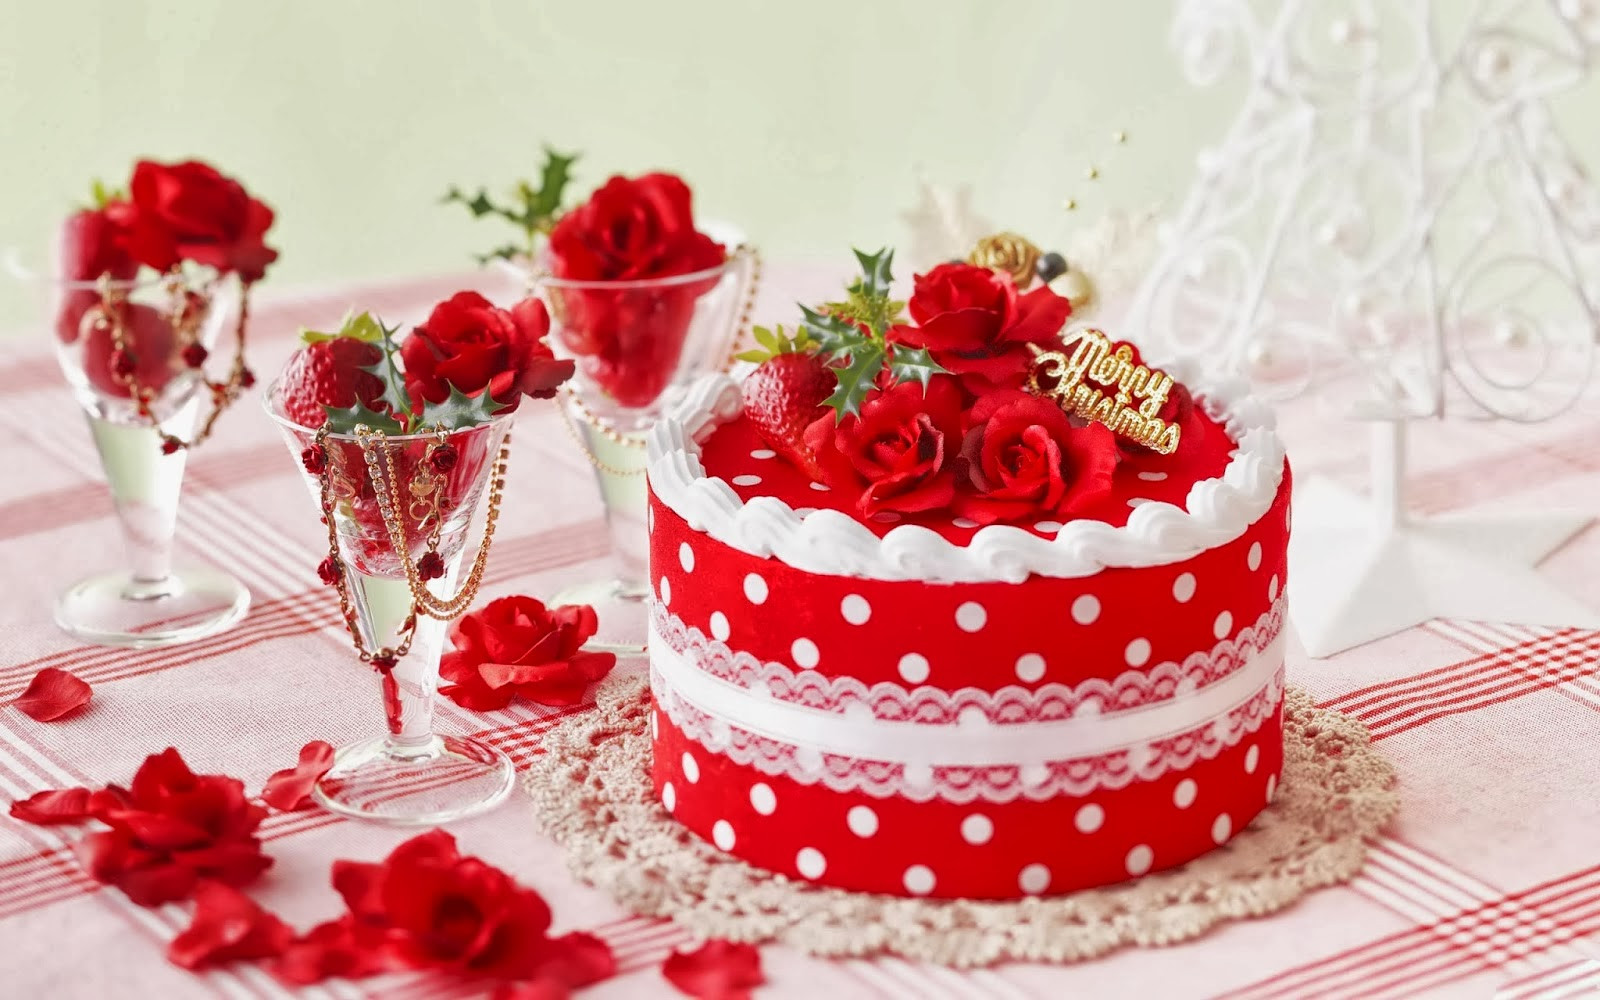 Picture Of Christmas Cakes  Christmas Cakes HD Wallpapers HD Wallpapers Blog